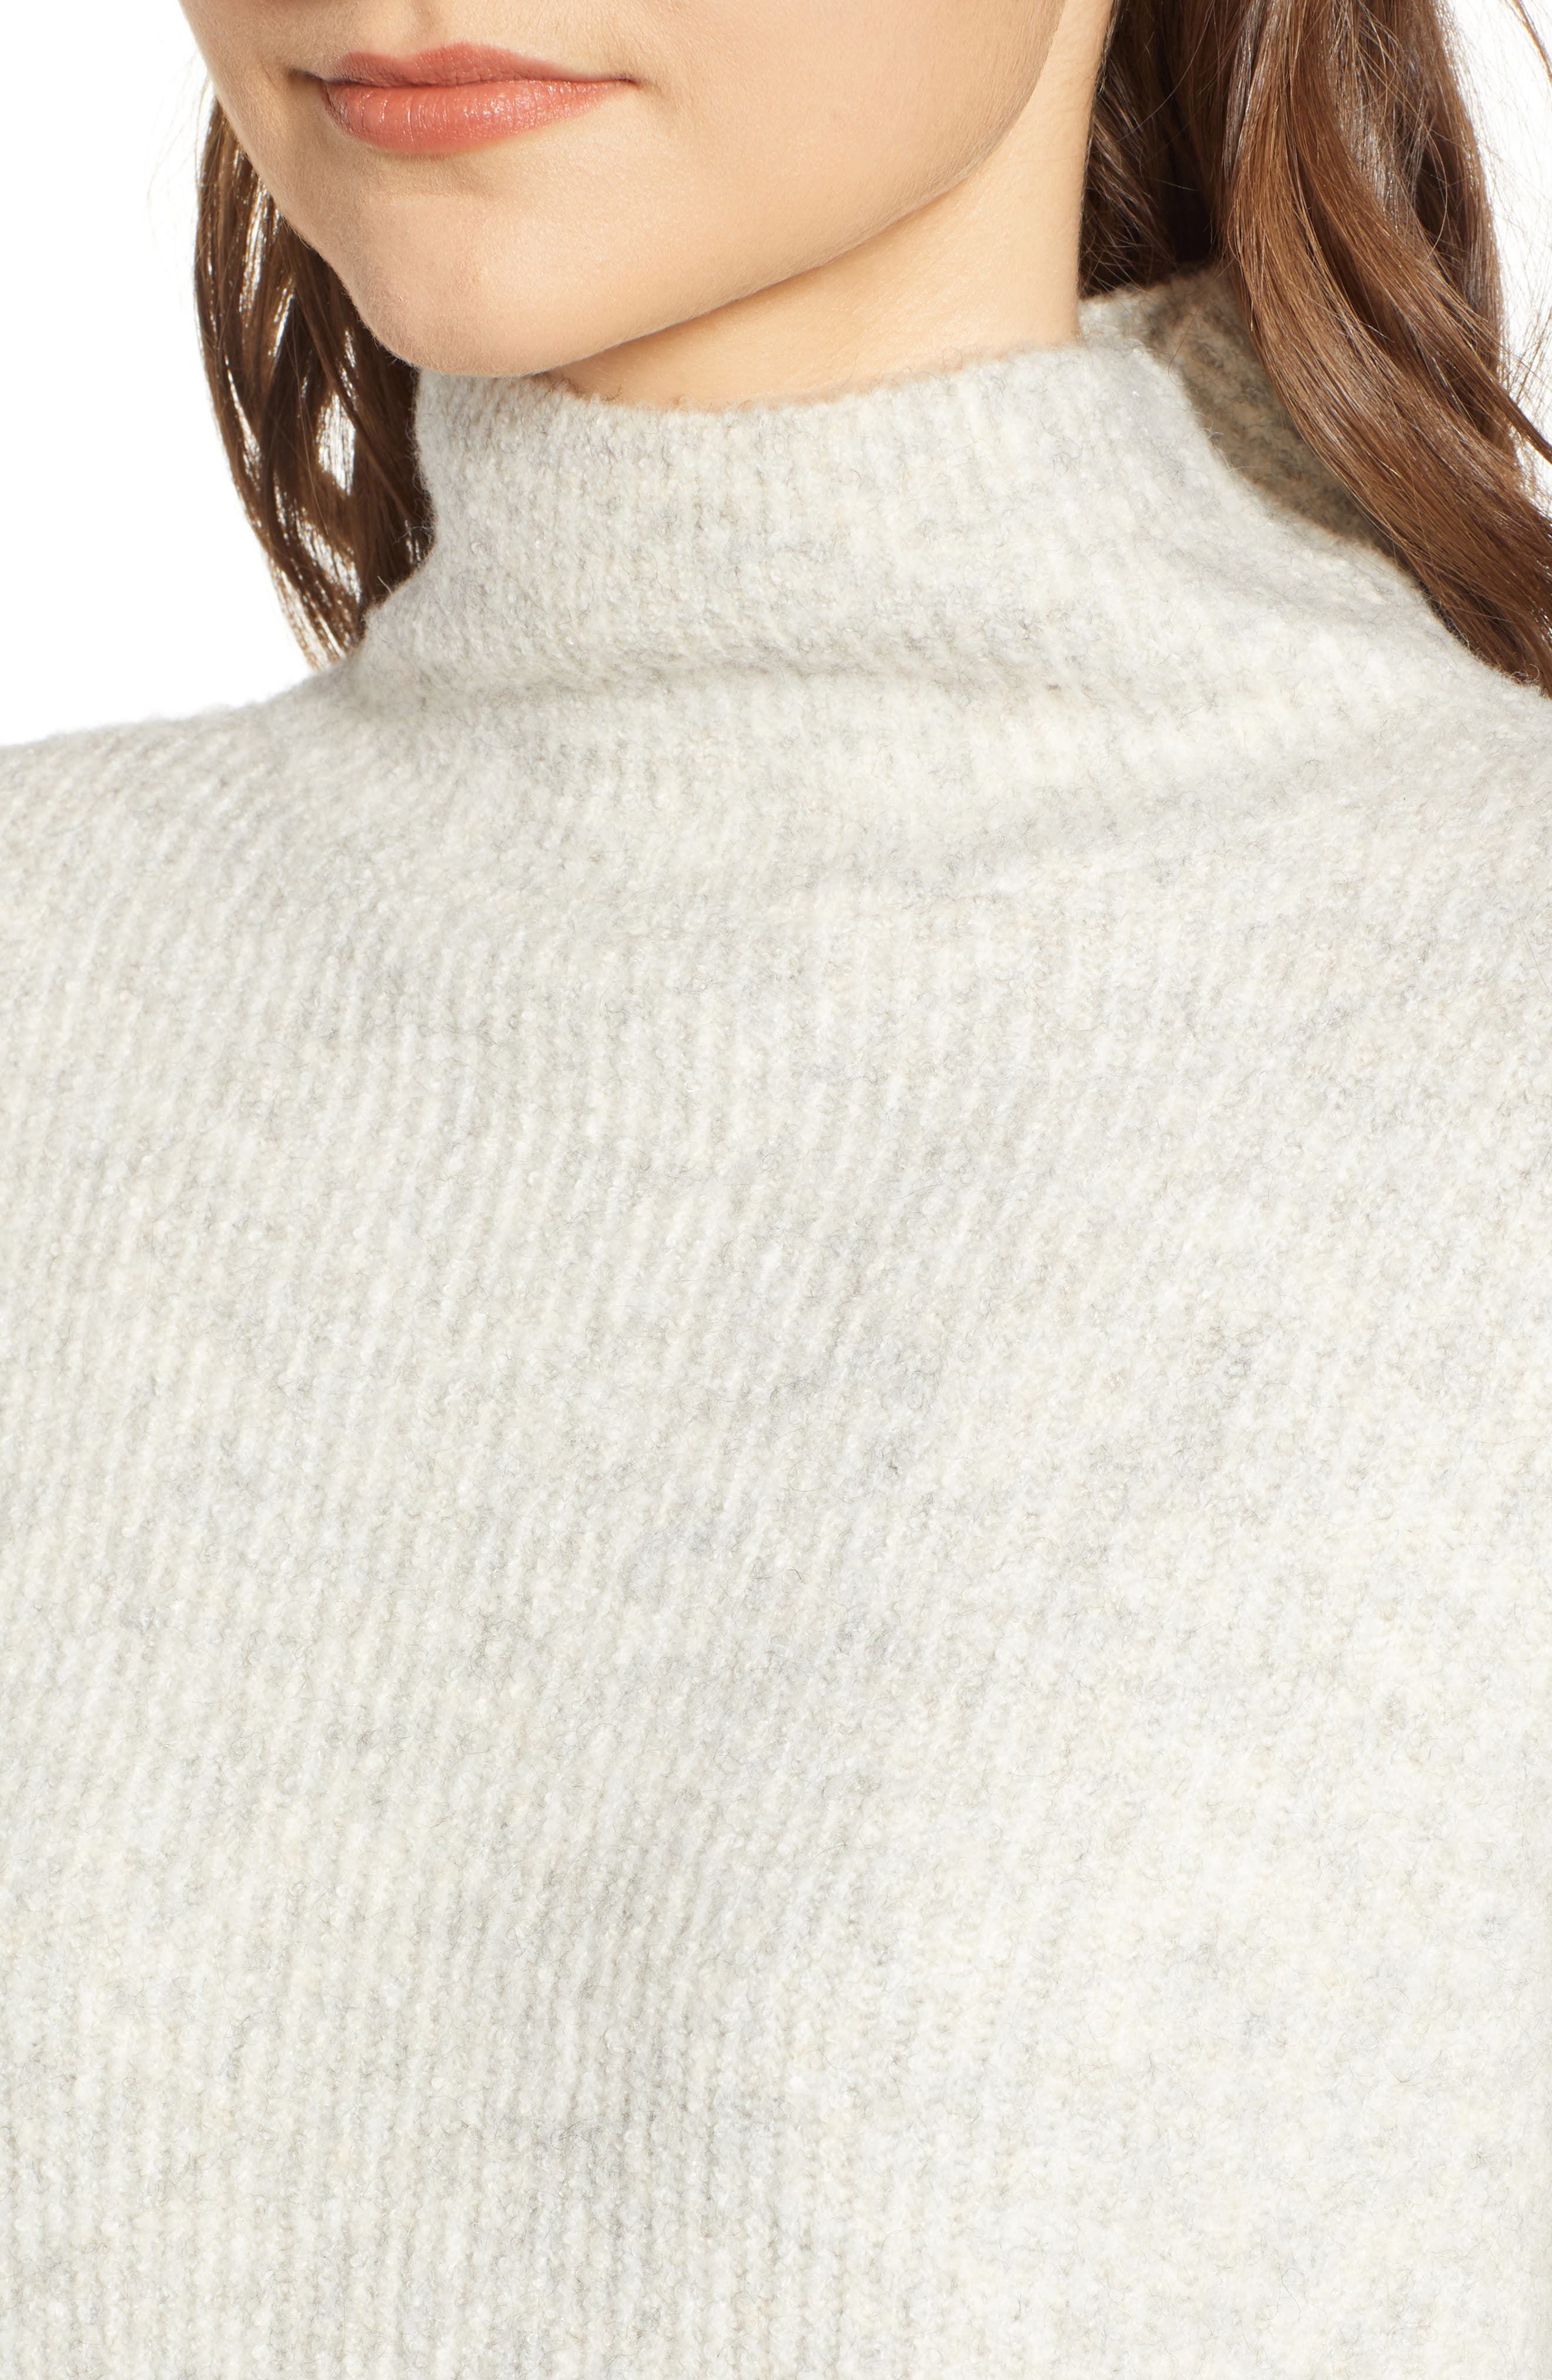 Urban Flossy Cowl Neck Sweater,                             Alternate thumbnail 4, color,                             OATMEAL